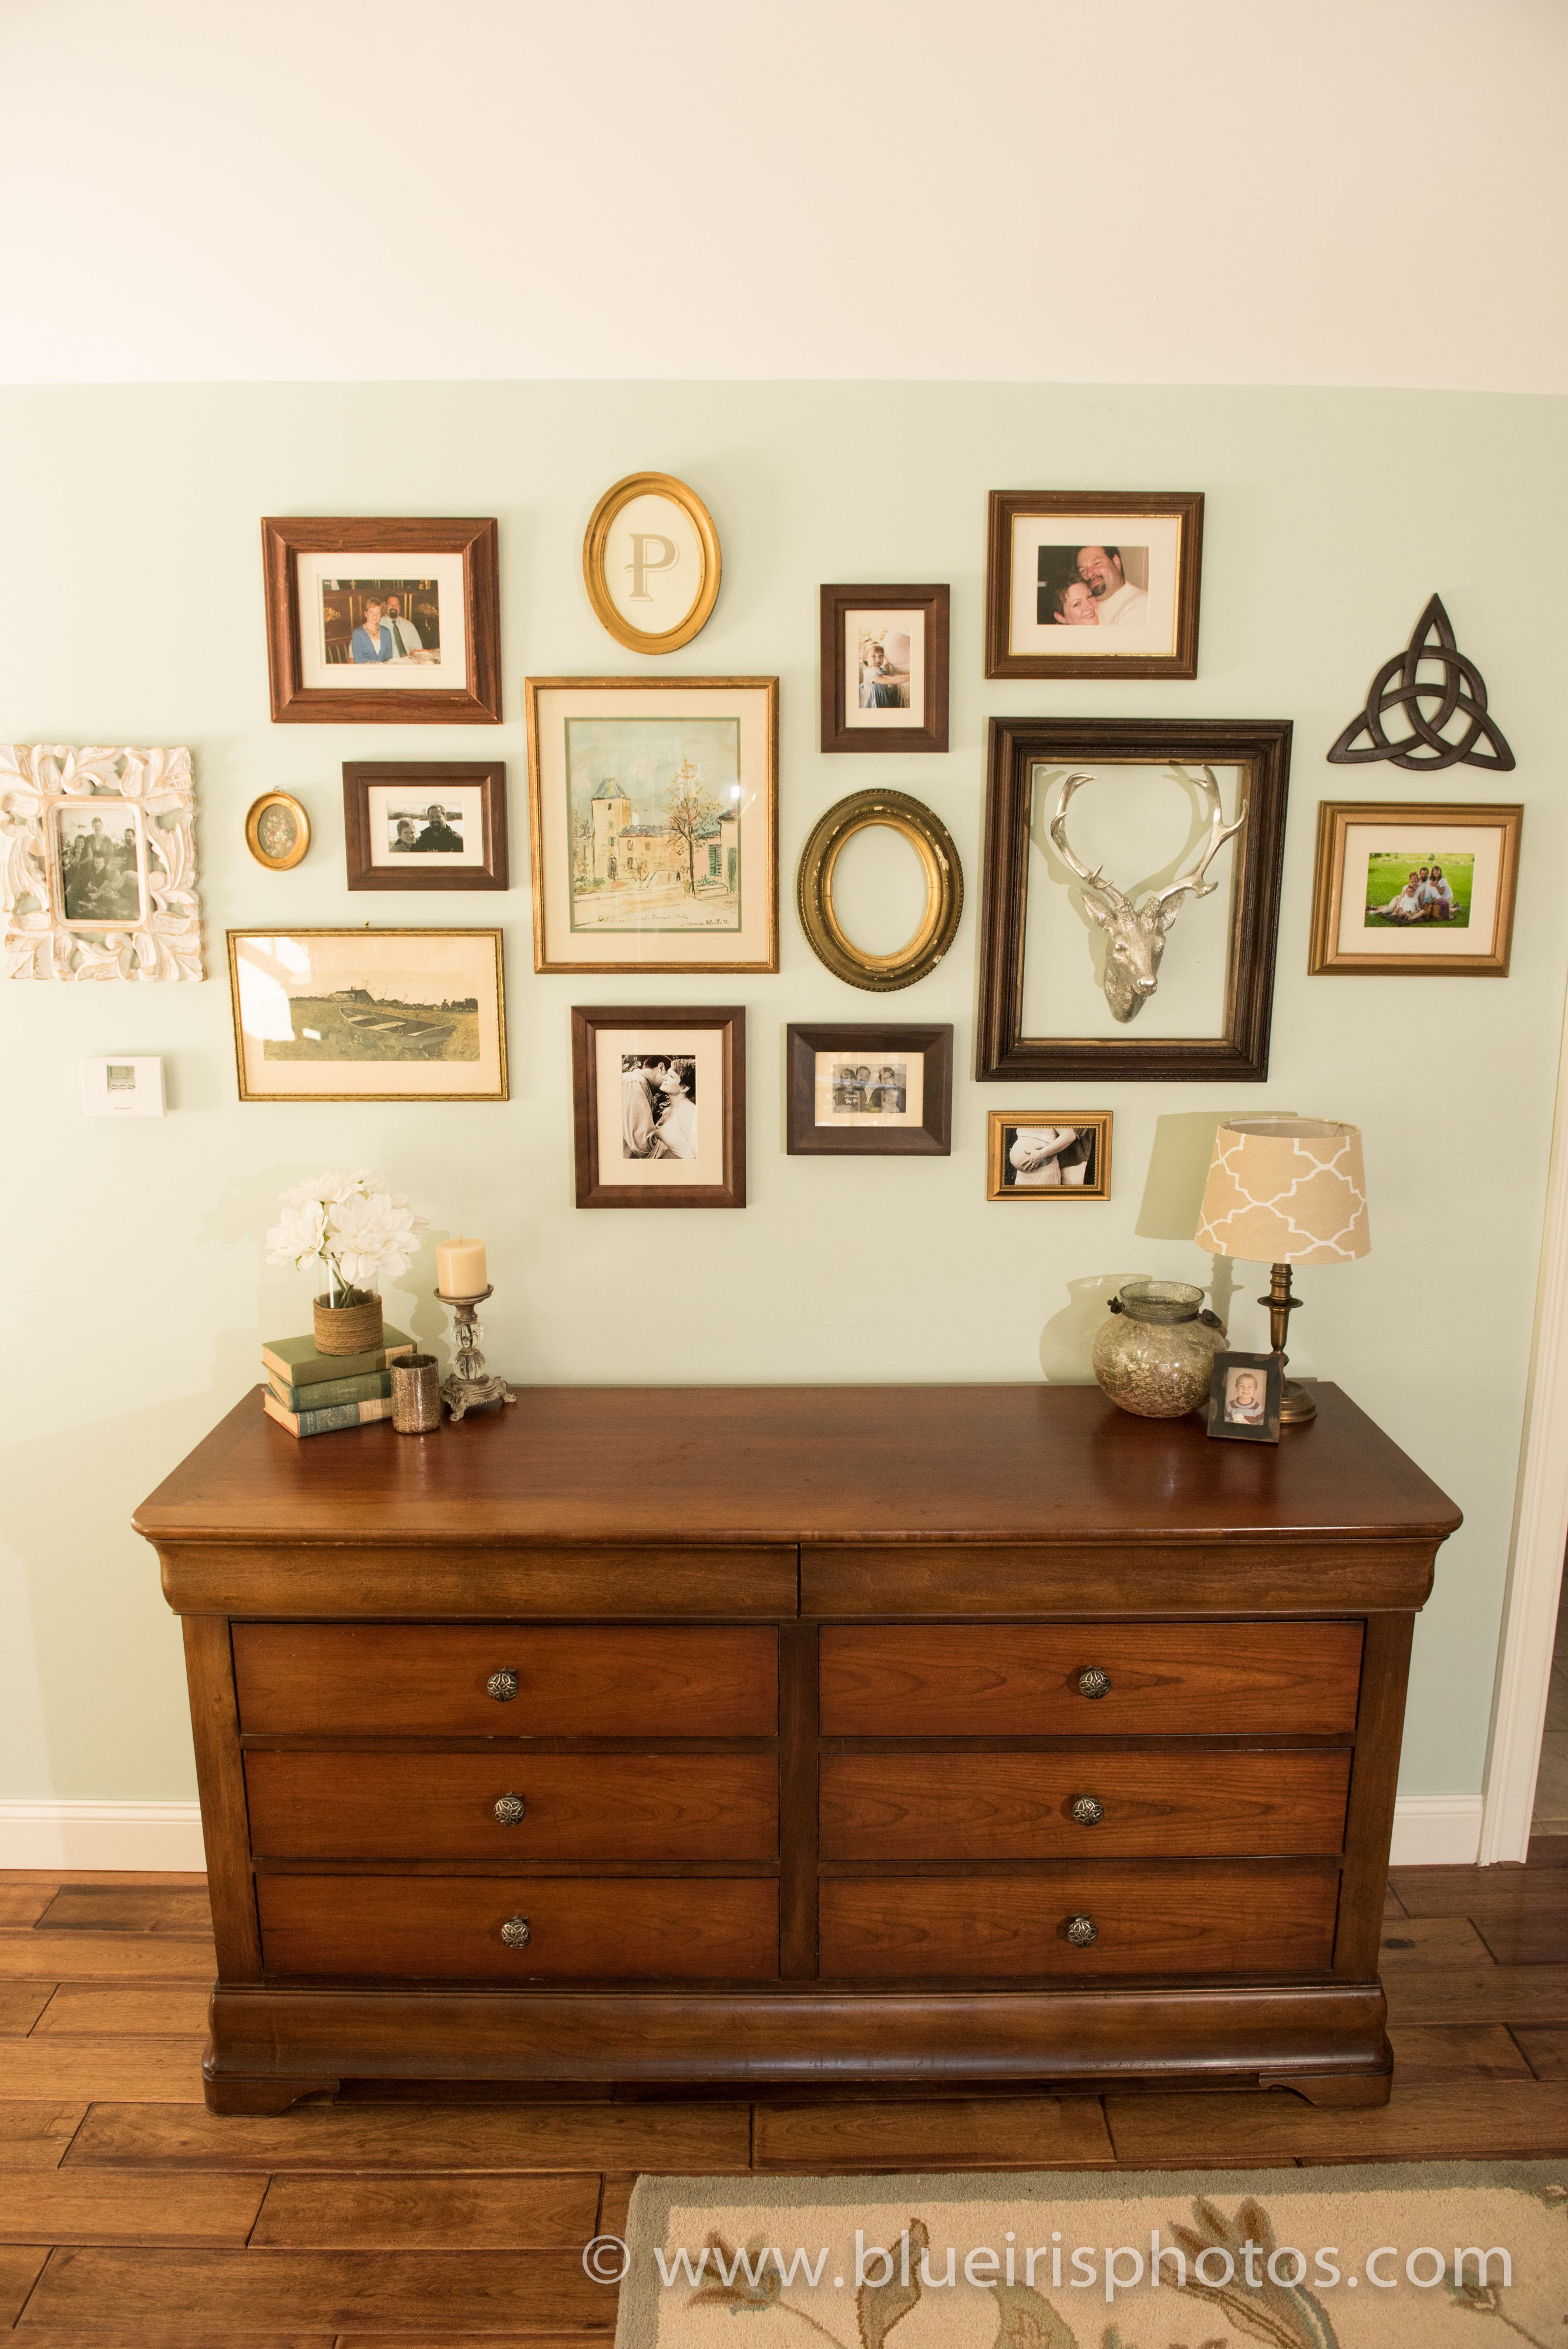 Love These Wall Collages Things From Home Pinterest # Muebles Hojalata